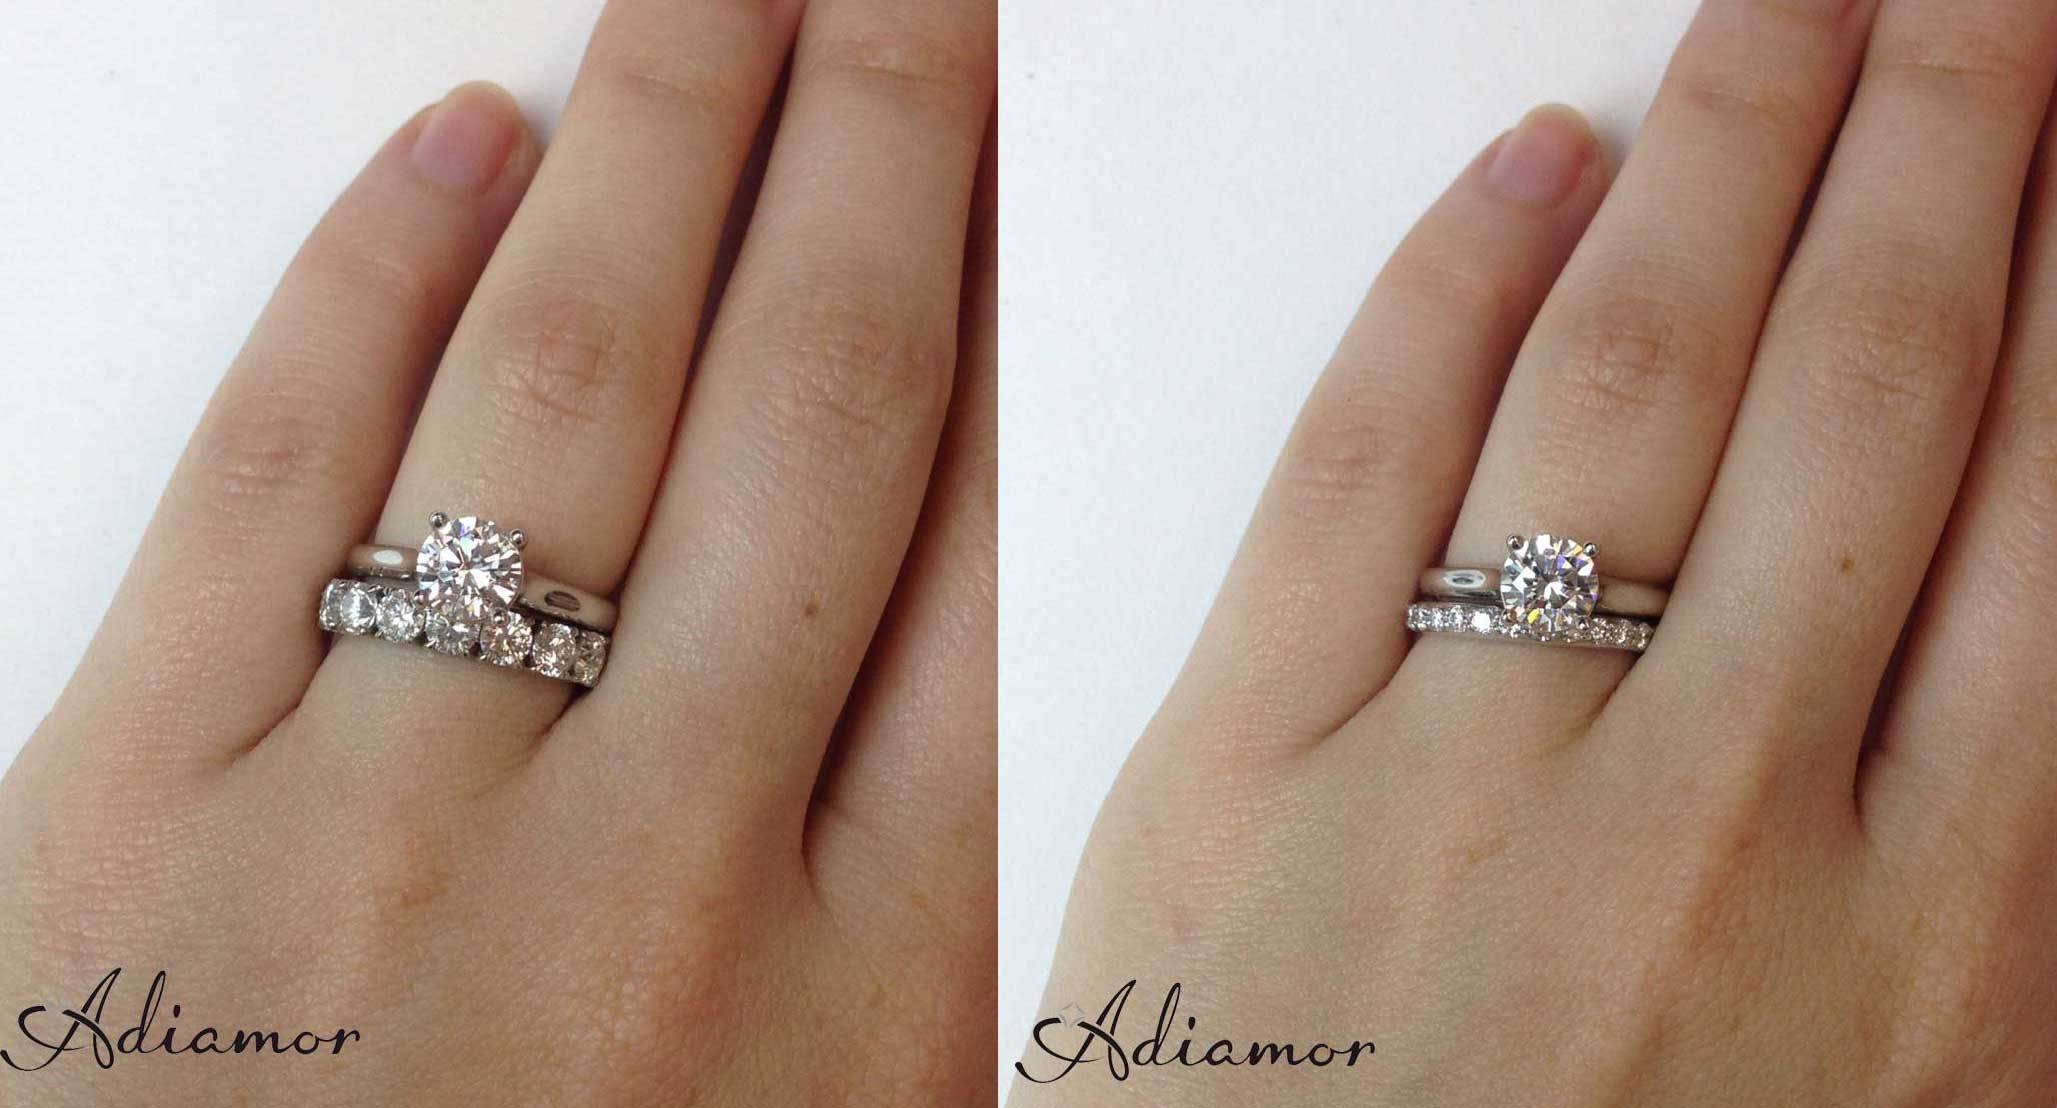 How Do People Like To Wear Wedding Bands? | Adiamor Within Engagement Rings With Wedding Bands (View 5 of 15)